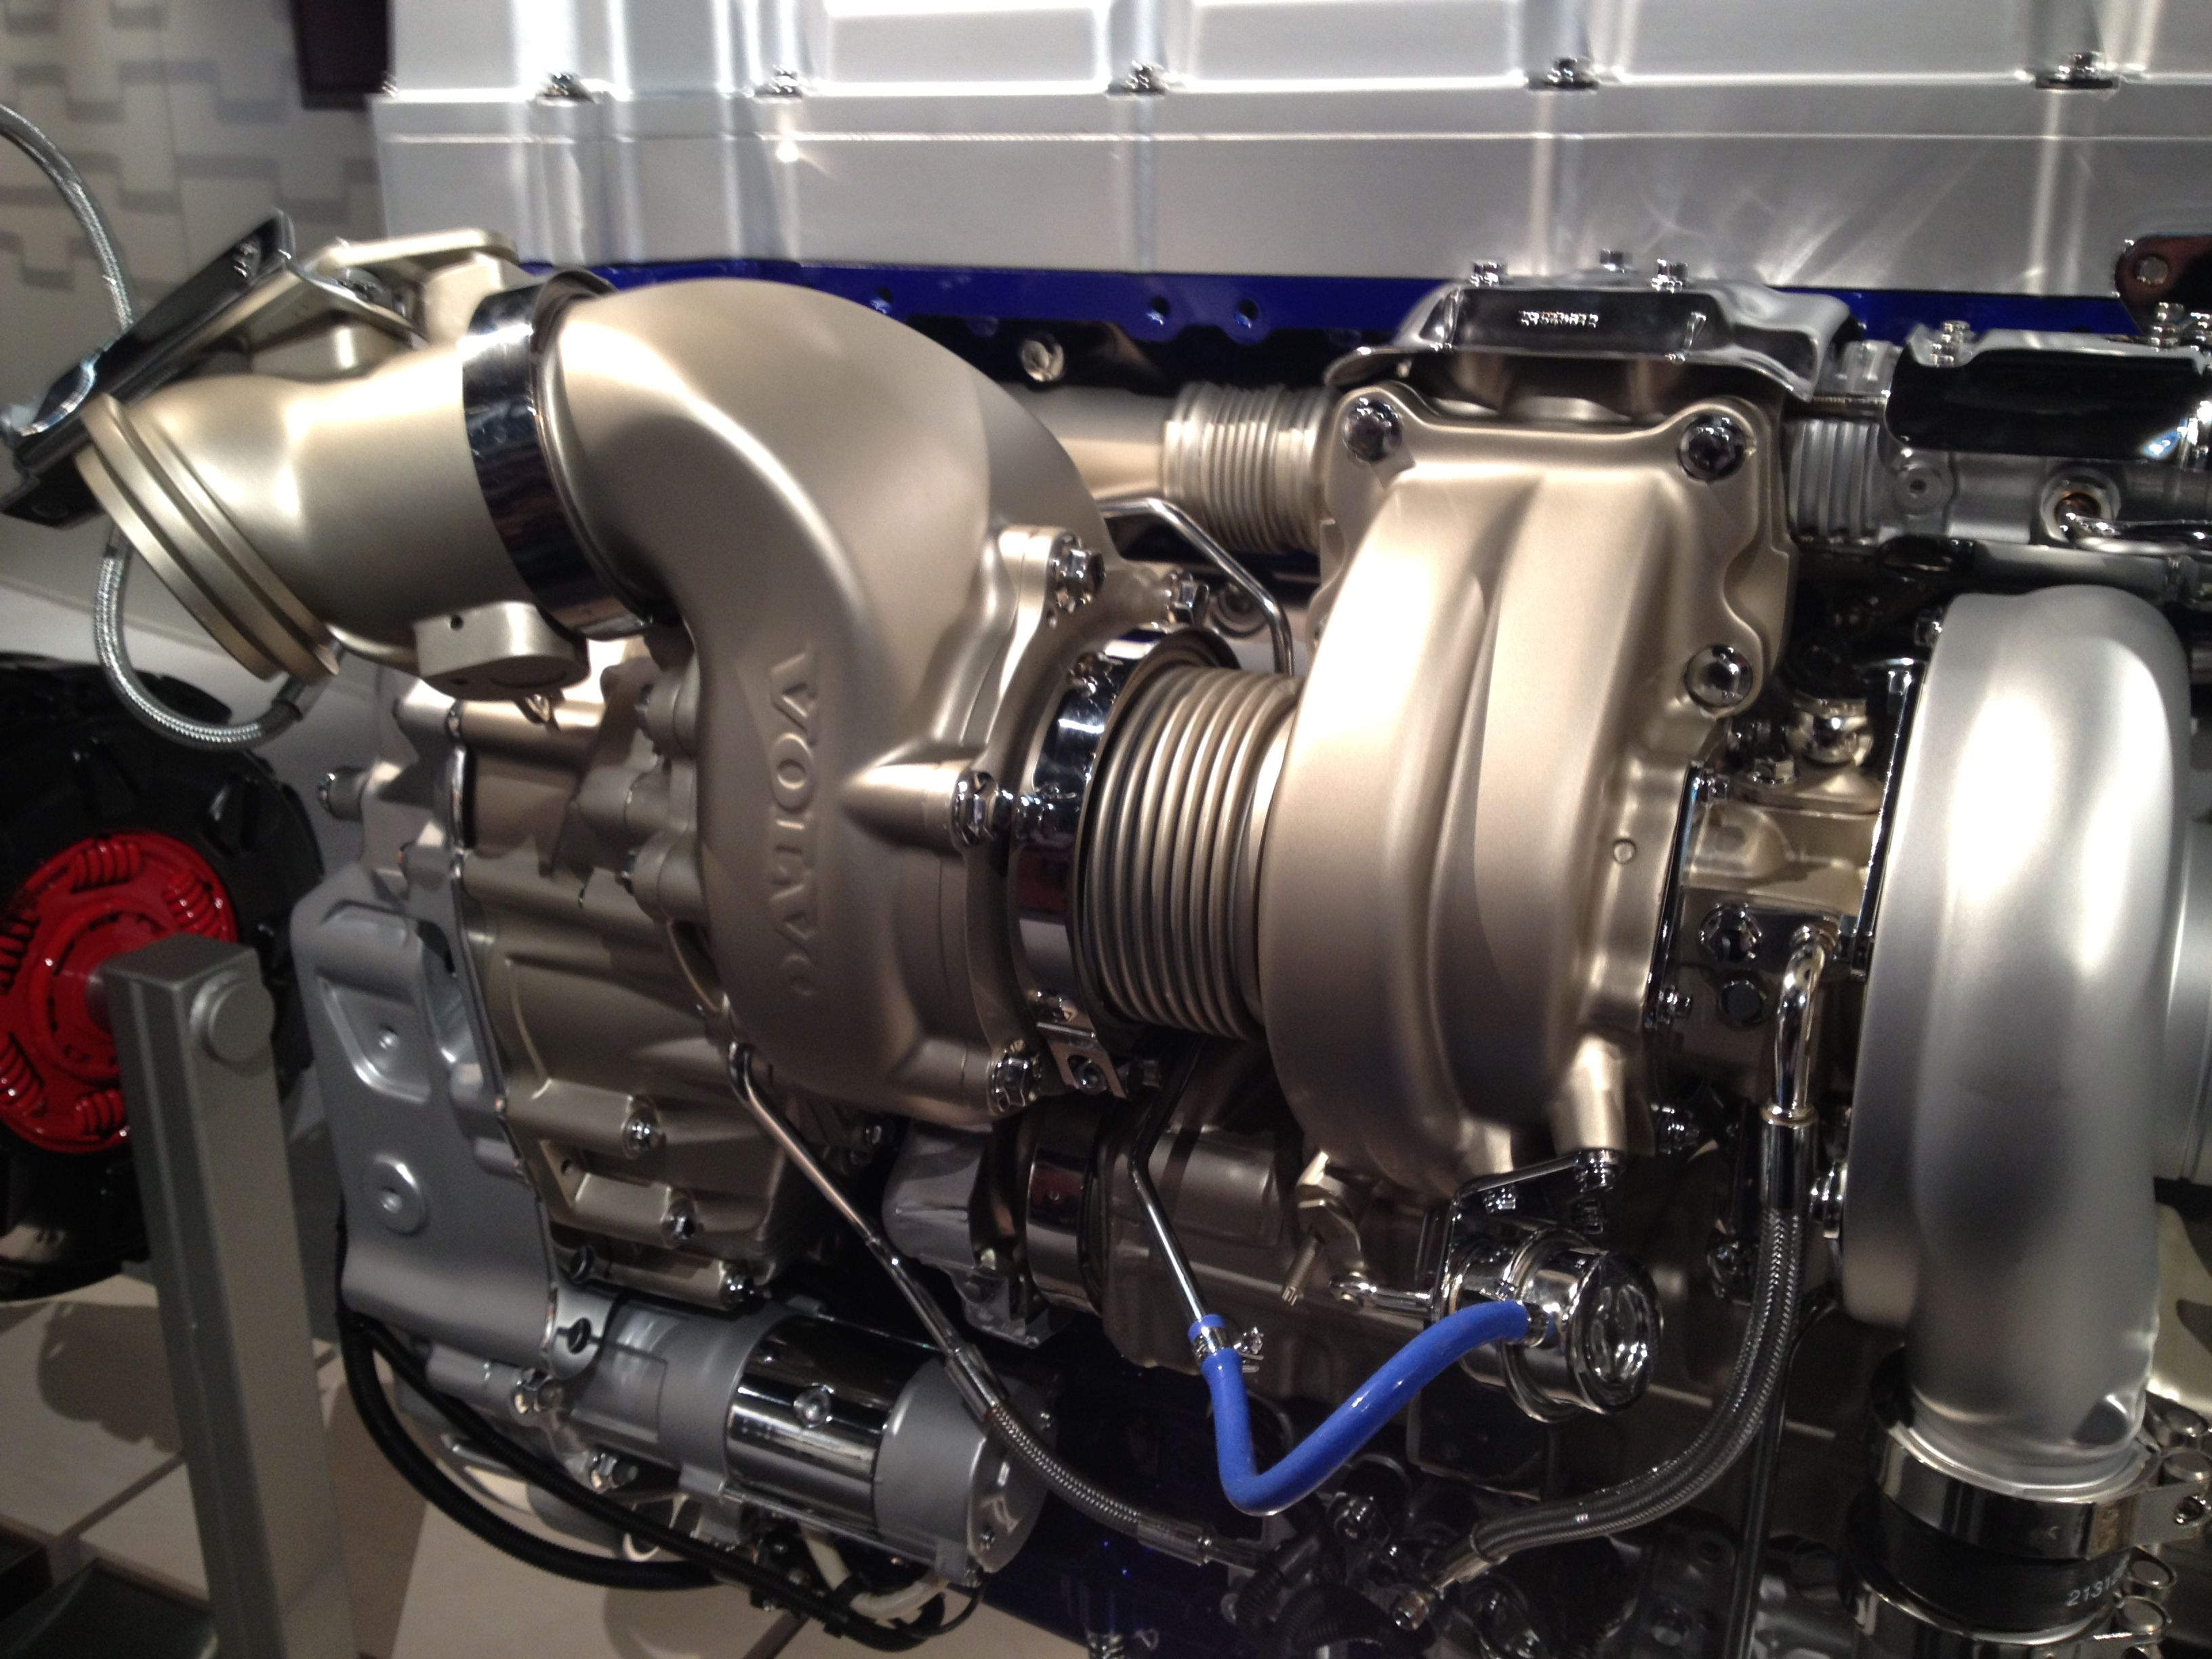 New ITorque engine from Volvo. Turbo compound 13 litre